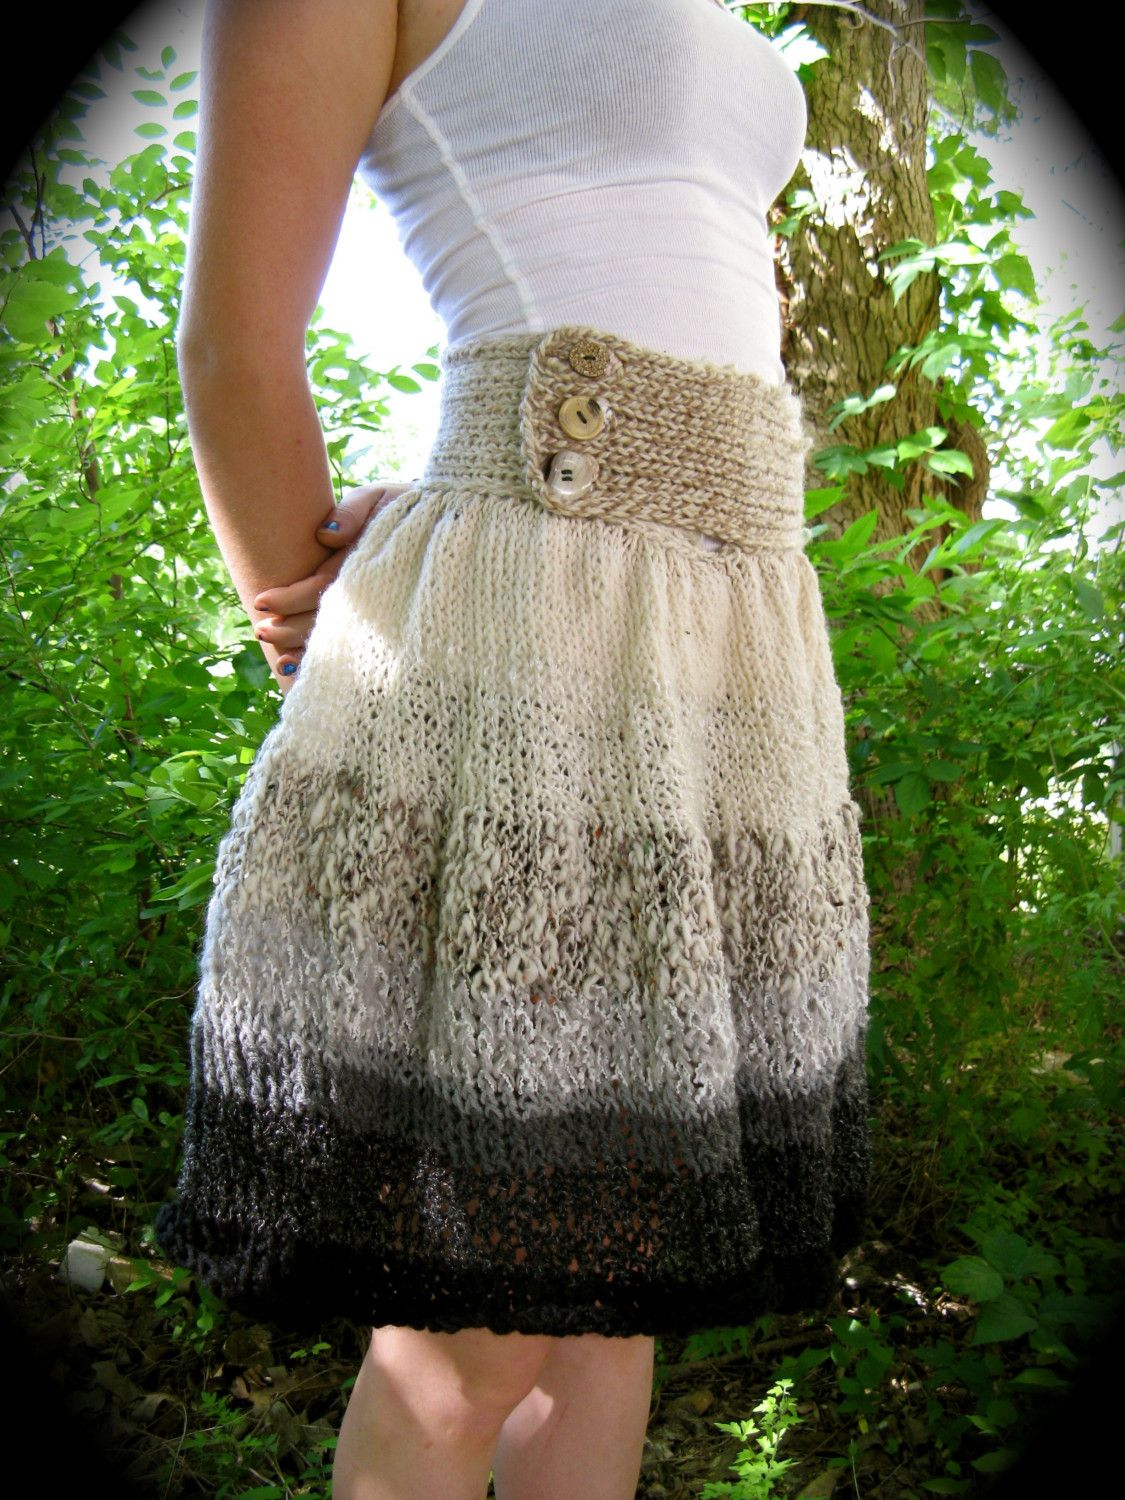 Knitting Pattern PDF - In the Clouds - a knitting recipe for the ...